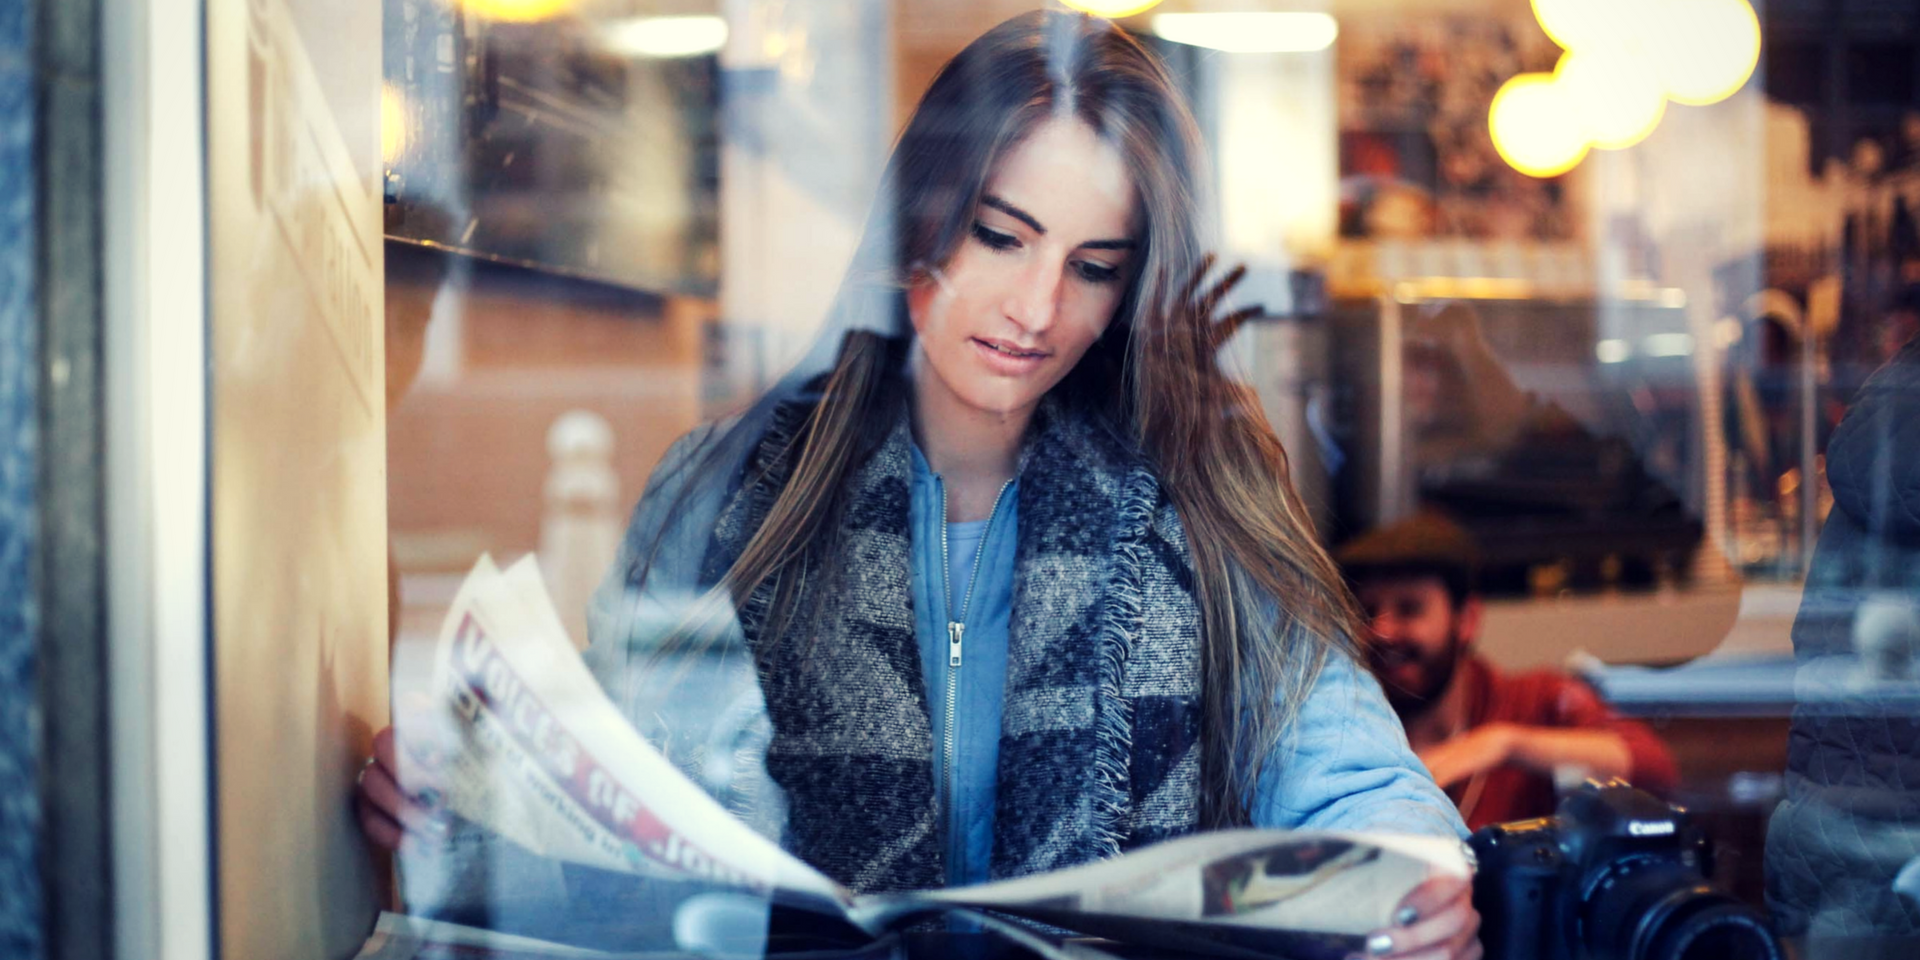 Woman in a coffee shop reading newspaper